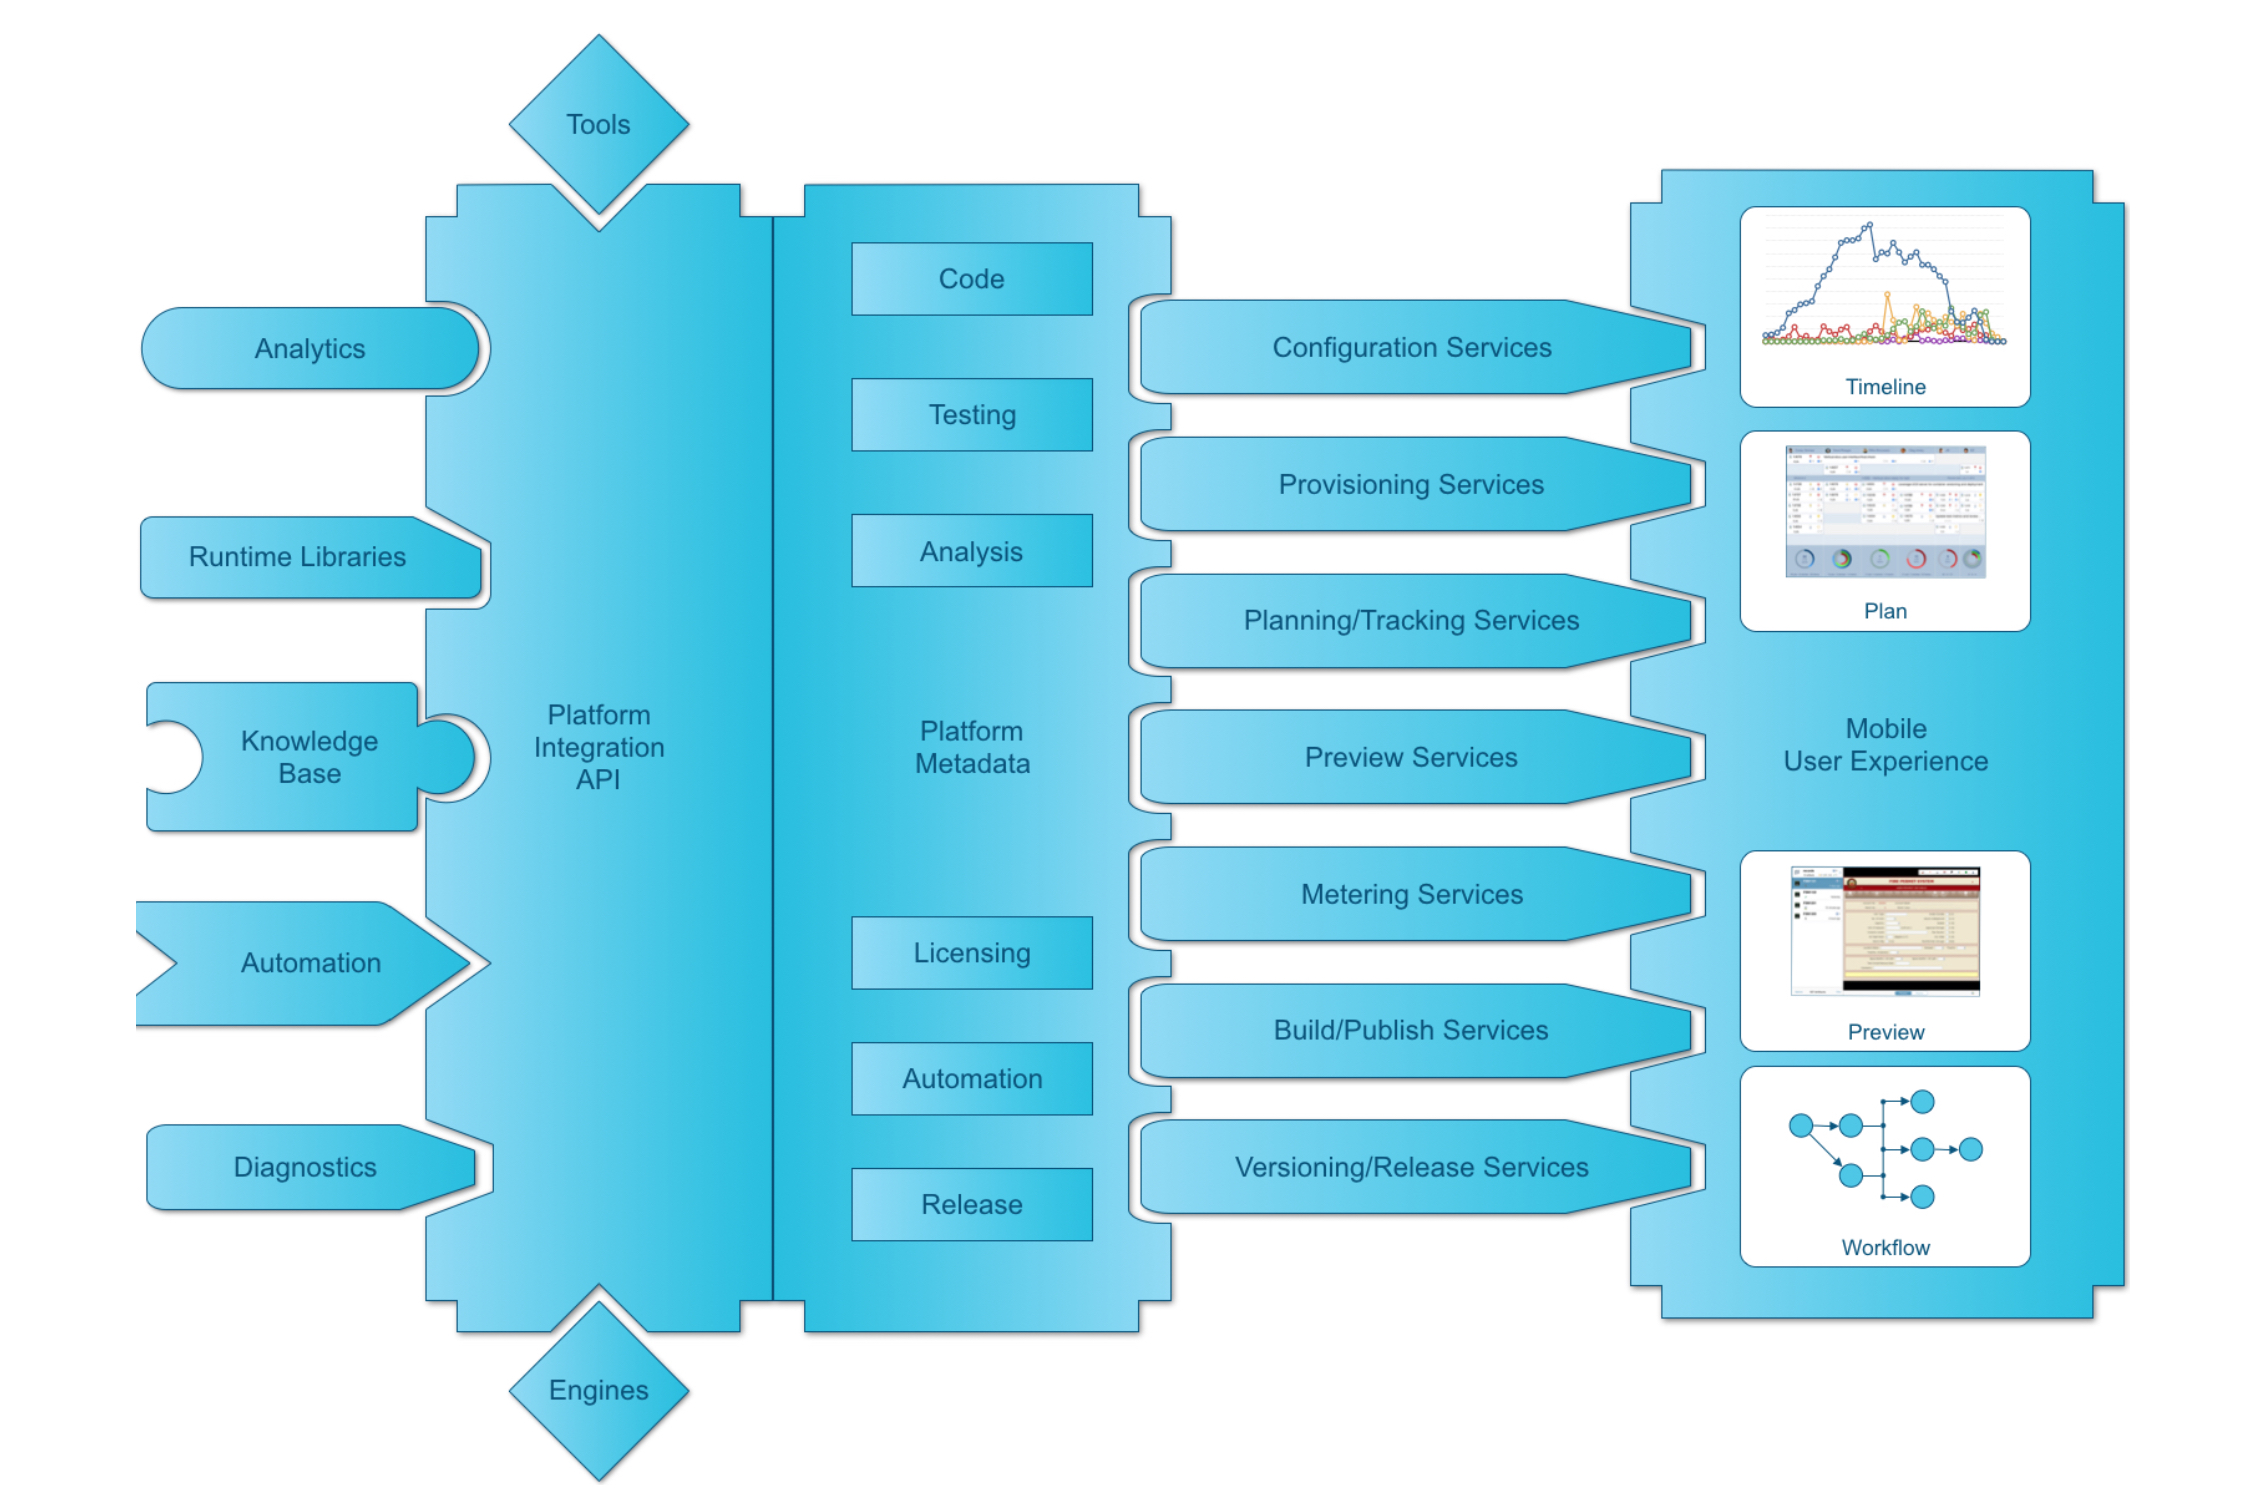 3rd-party Solution Integration - We are not going it alone. Any 3rd-party migration engines can be integrated inside MLP as part of its automation workflow. This capability is crucial to building a healthy and growing ecosystem of best-of-breed migration solution provider partners and extending the capabilities of MLP to other legacy platforms as well as modern target platforms and emerging technologies. This is equally beneficial to customers as it is to 3rd-party vendors.